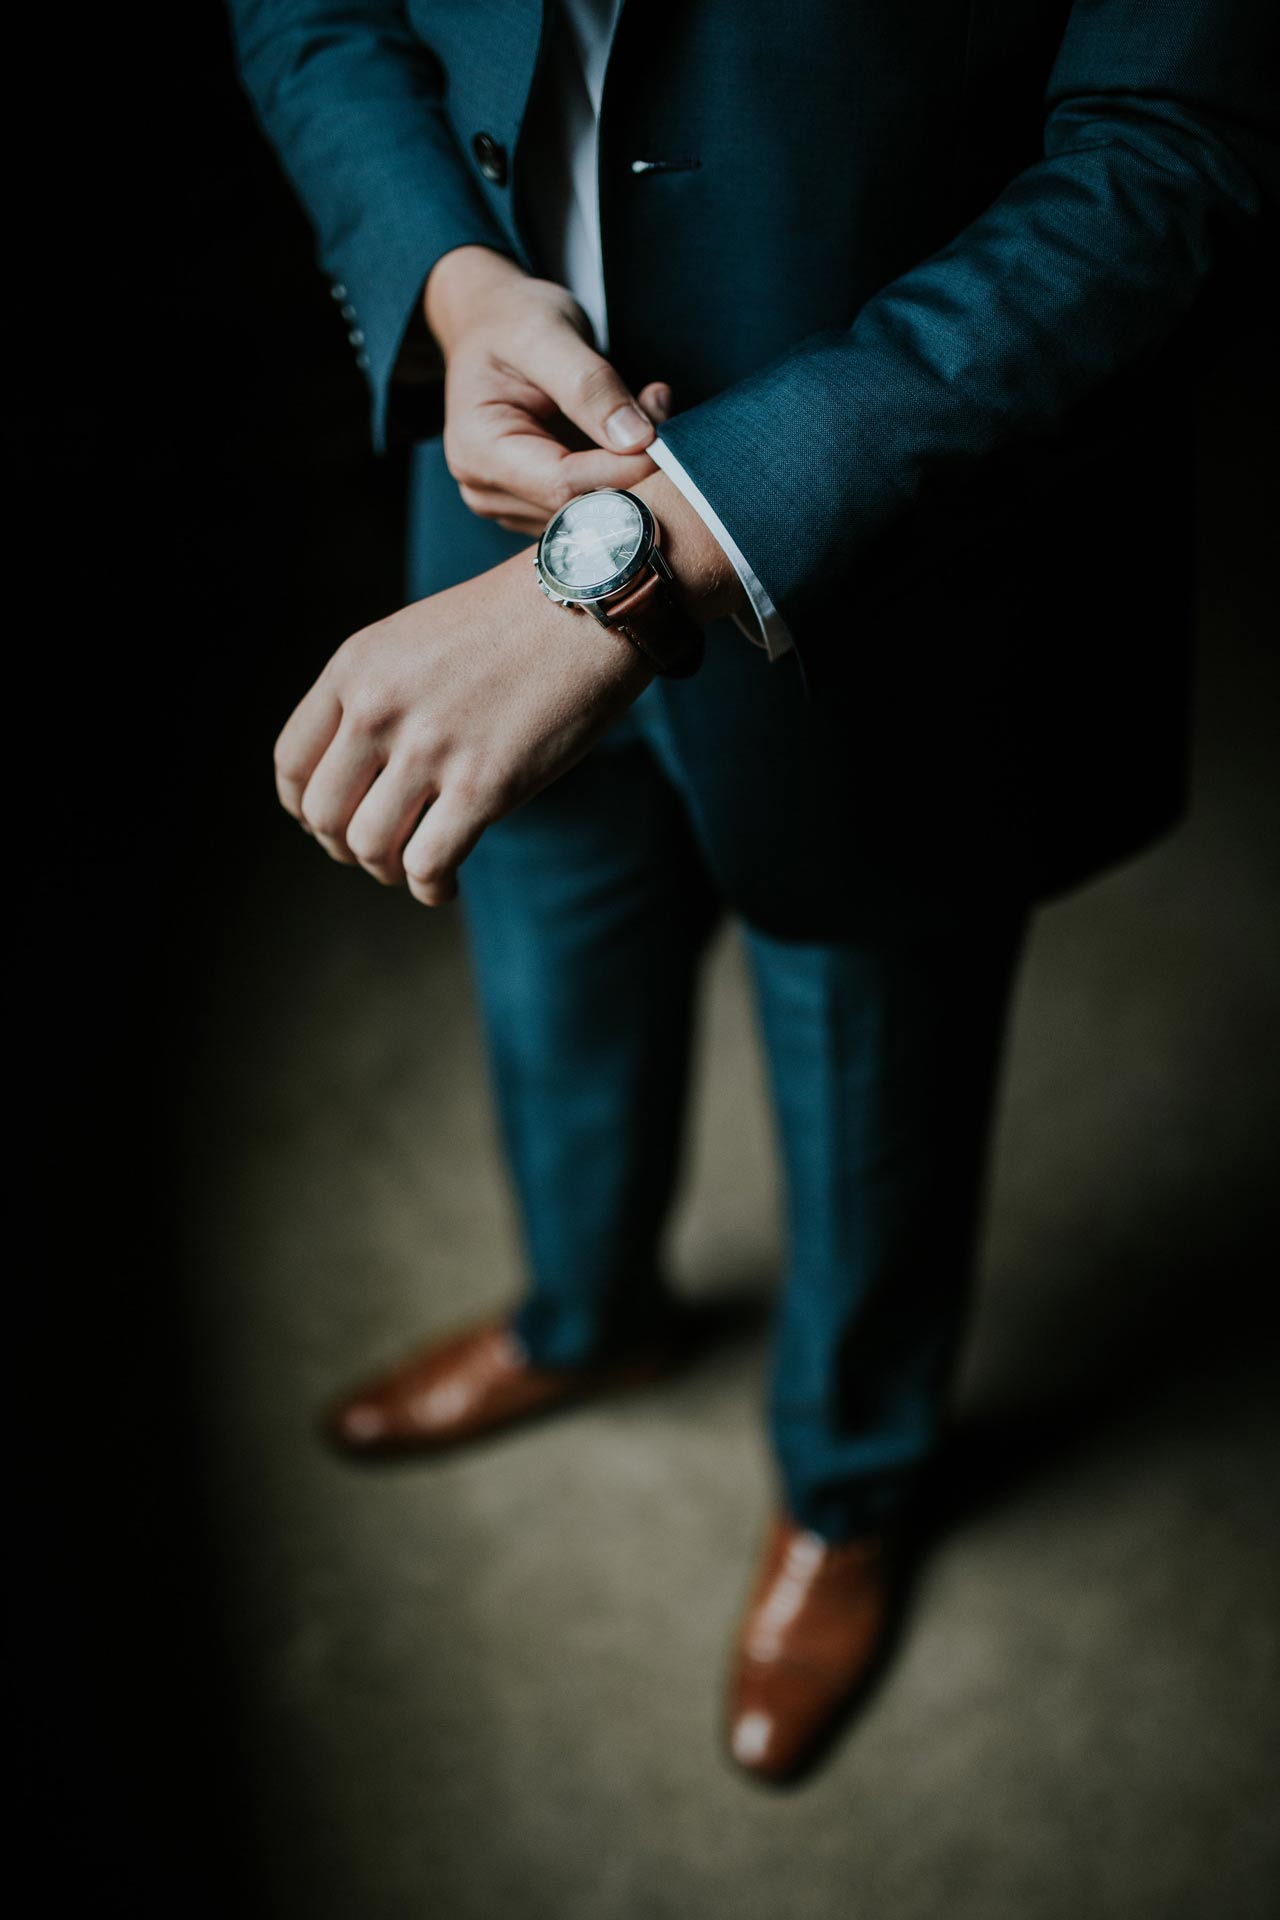 Industry providers page business man in suit adjusting sleeve with watch on wrist